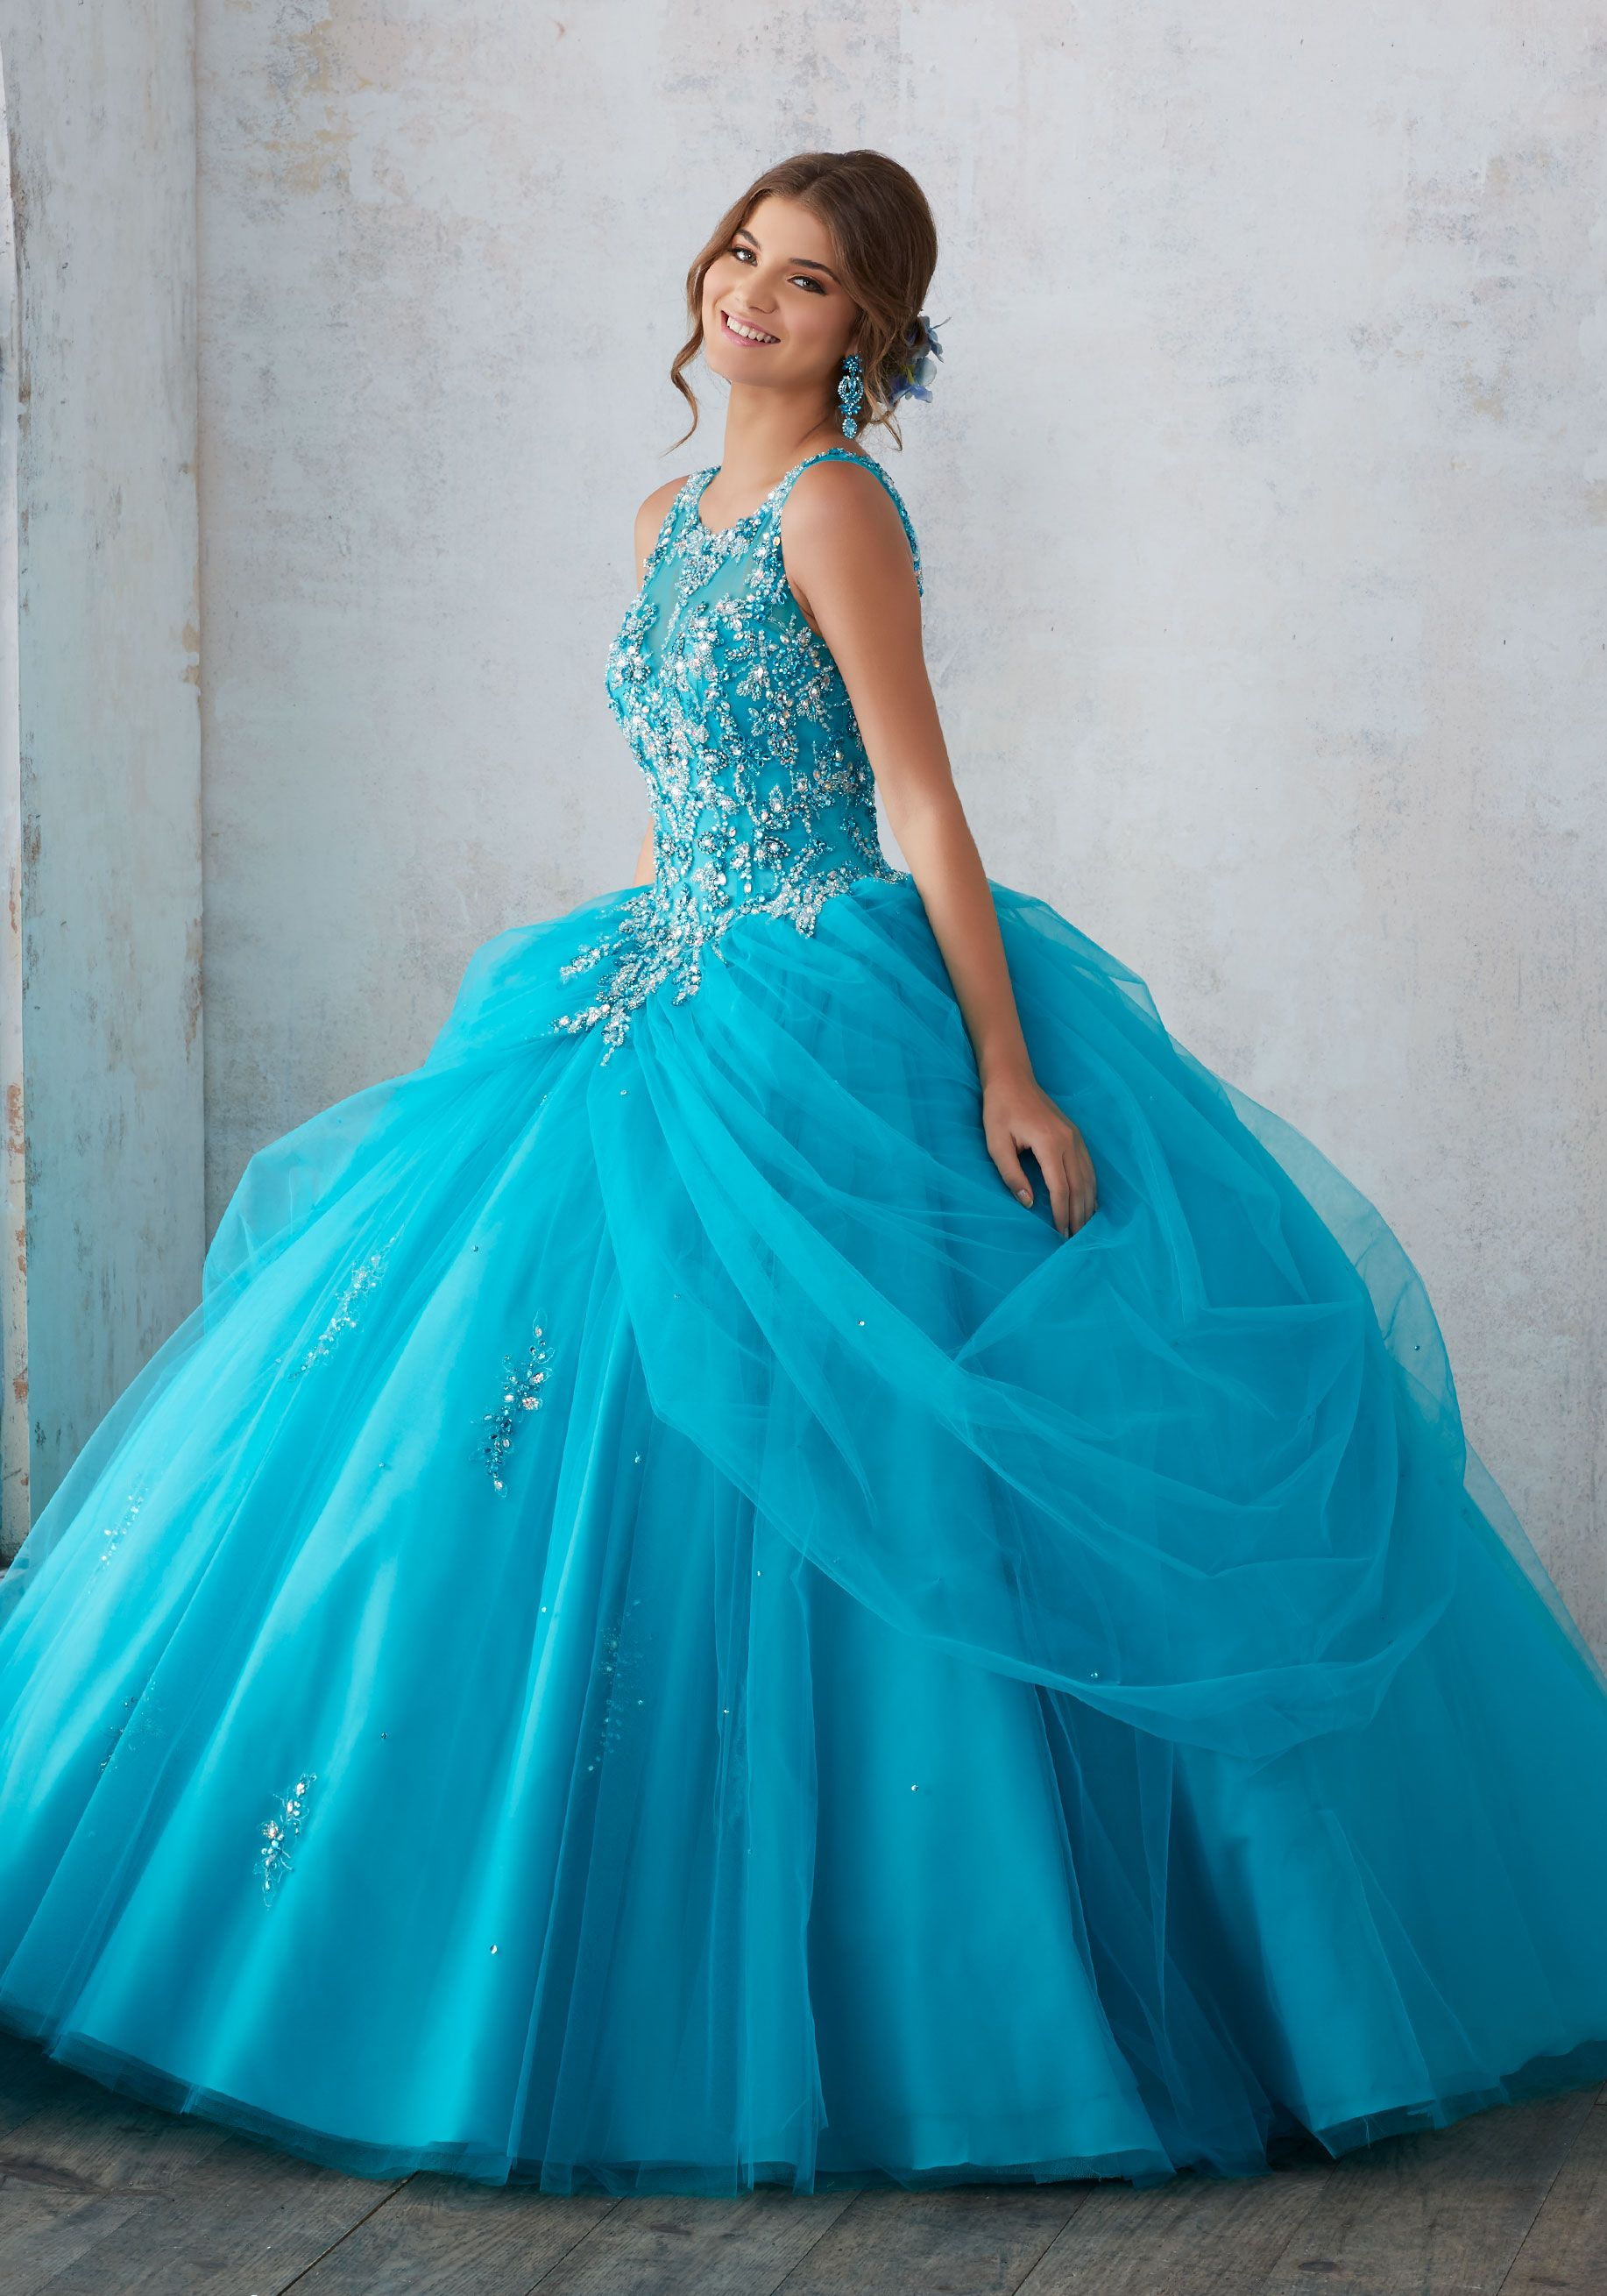 6dd2419b3c0 Jeweled Beading on a Princess Tulle Ballgown